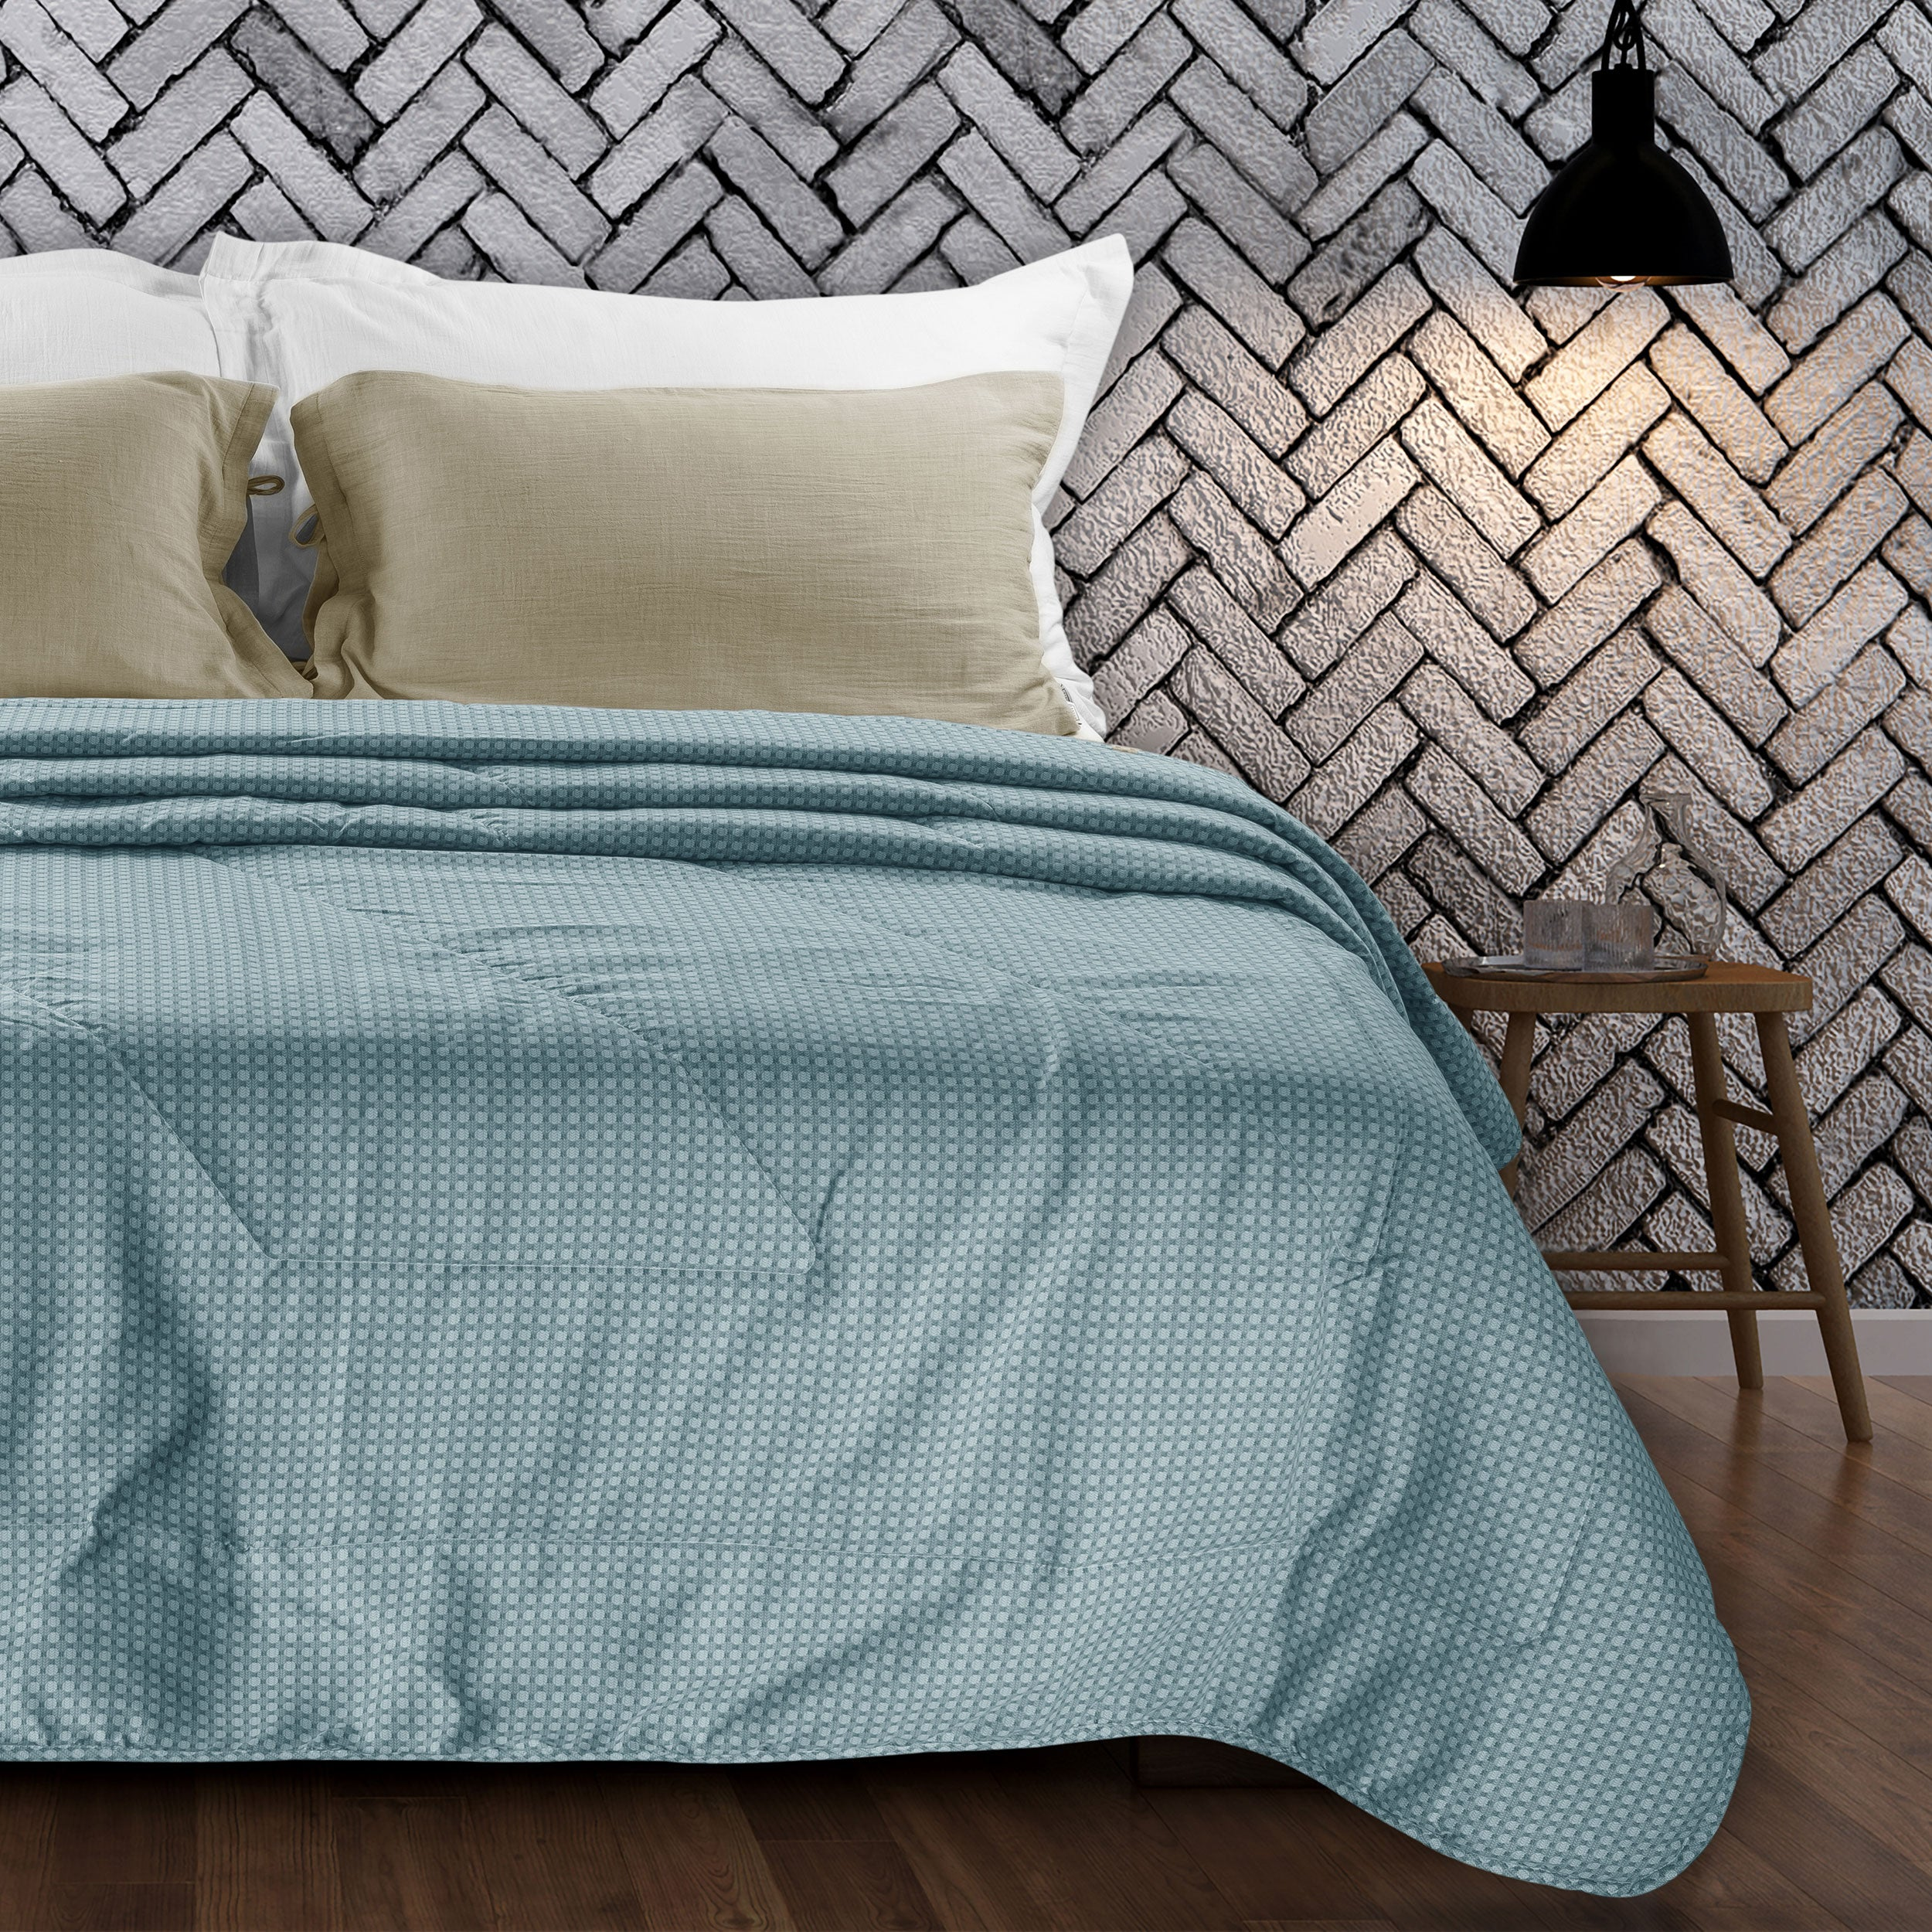 Countryside Summer AC Quilt - Aquatic